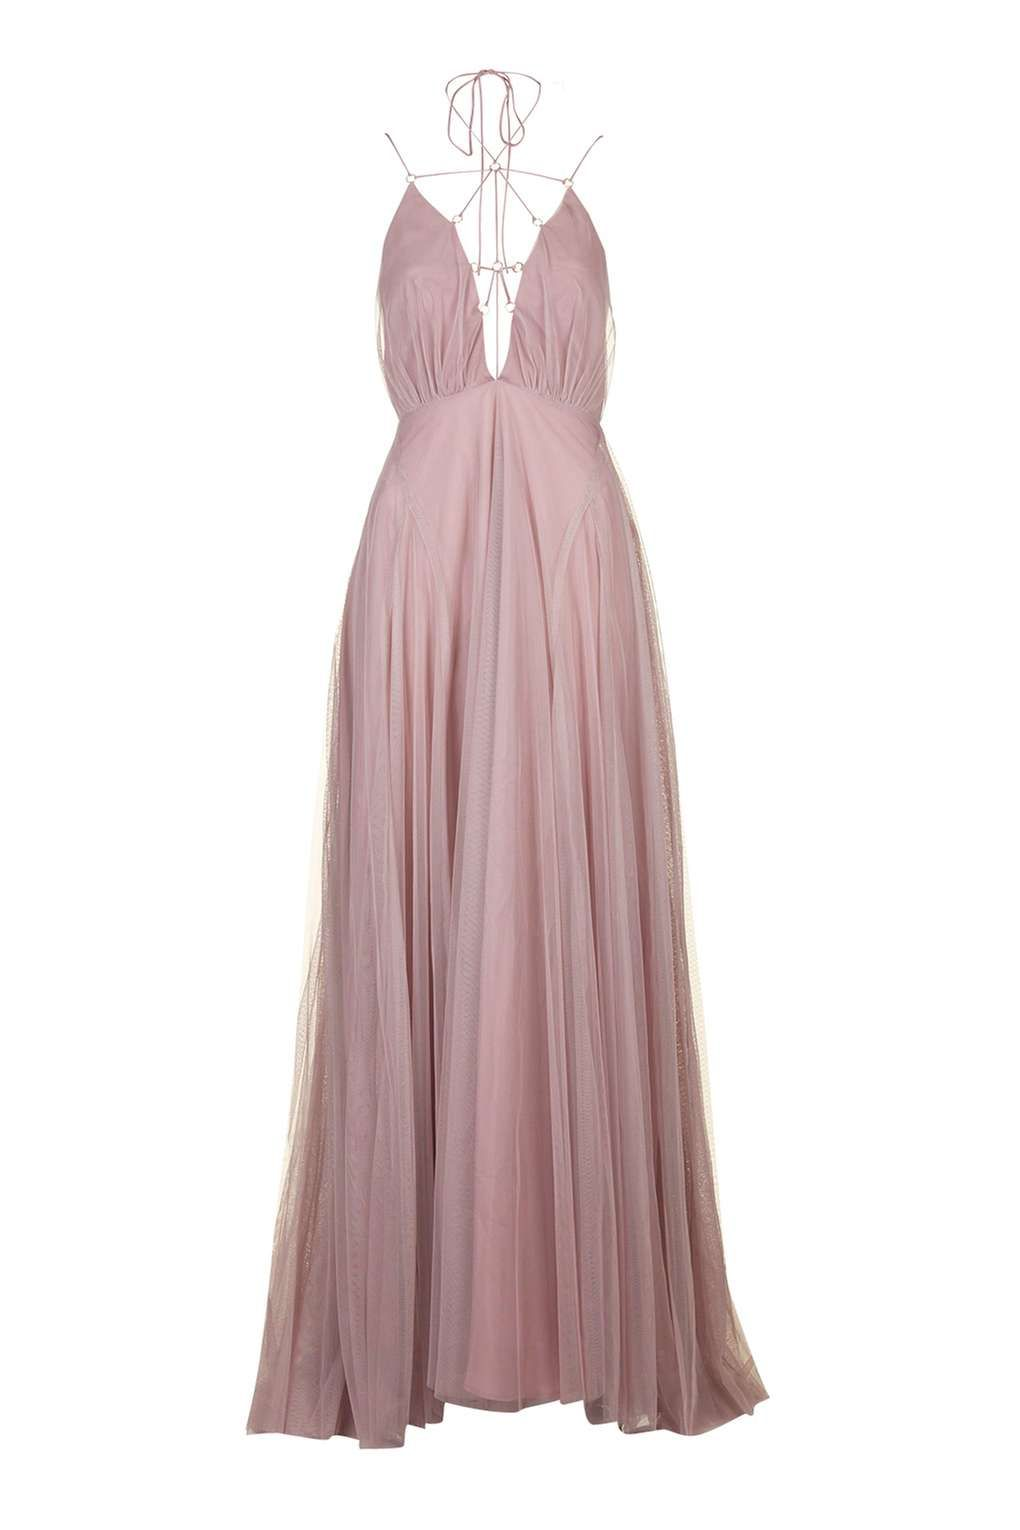 Tulle Lace Up Maxi Dress We Love Tulle Lace Maxi Dresses And